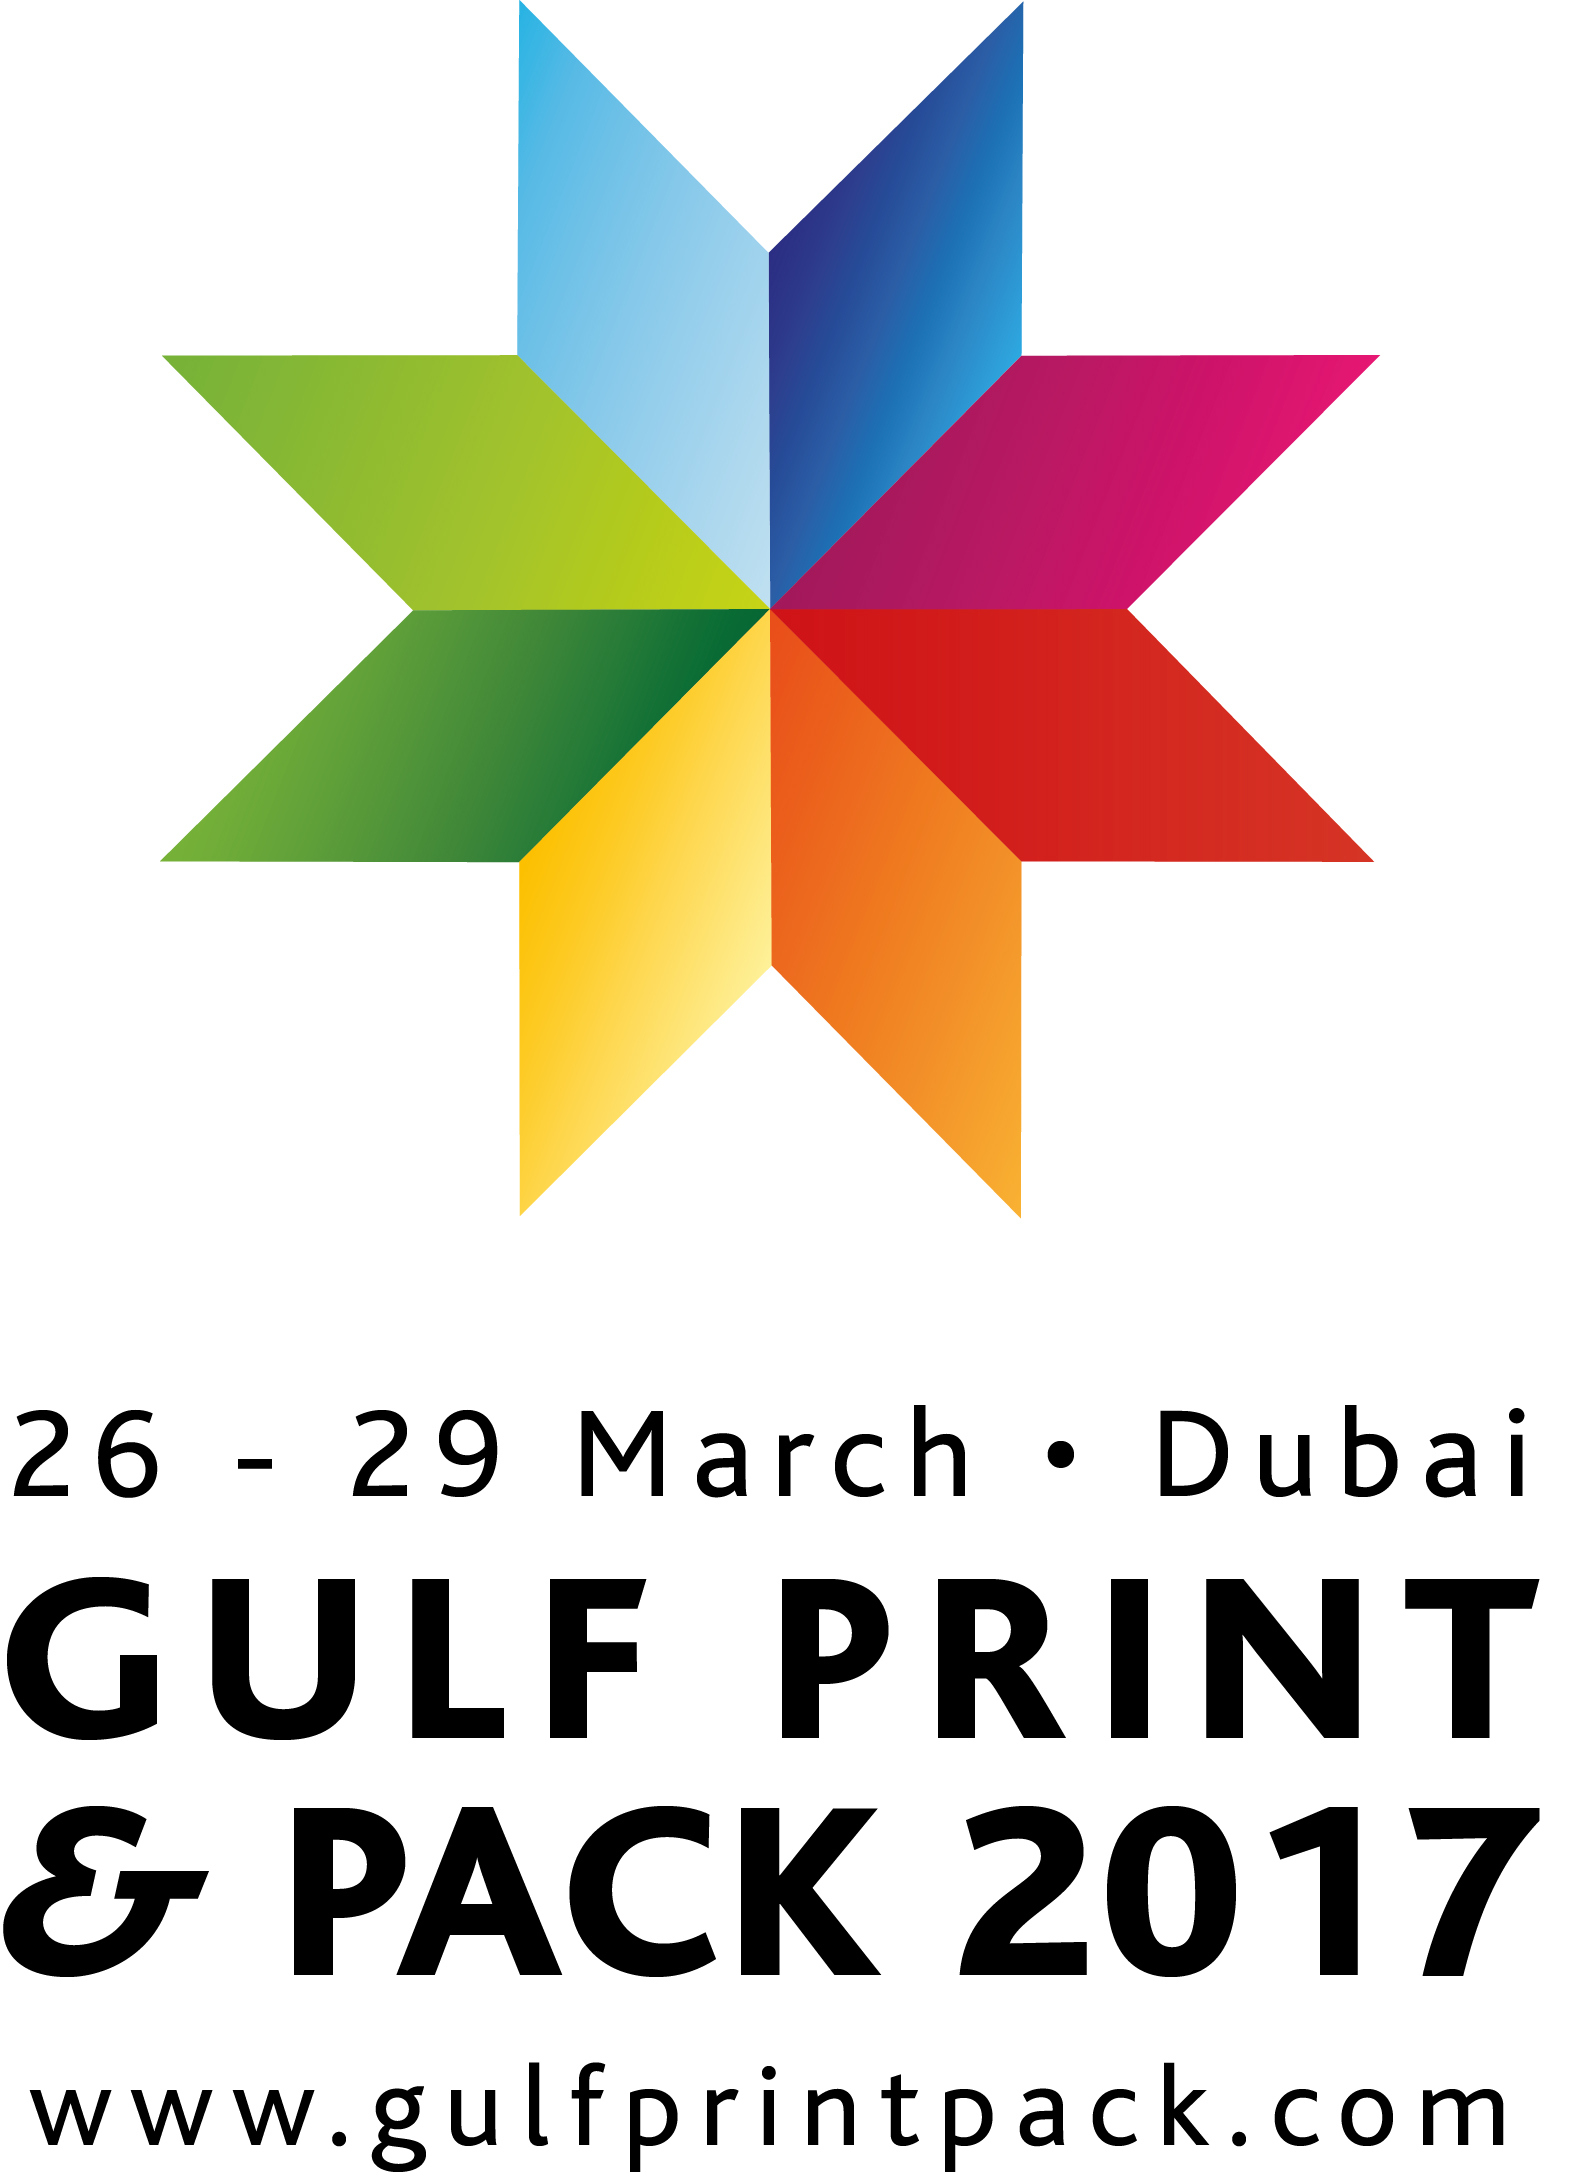 STOMA at the Gulf Print & Pack 2017